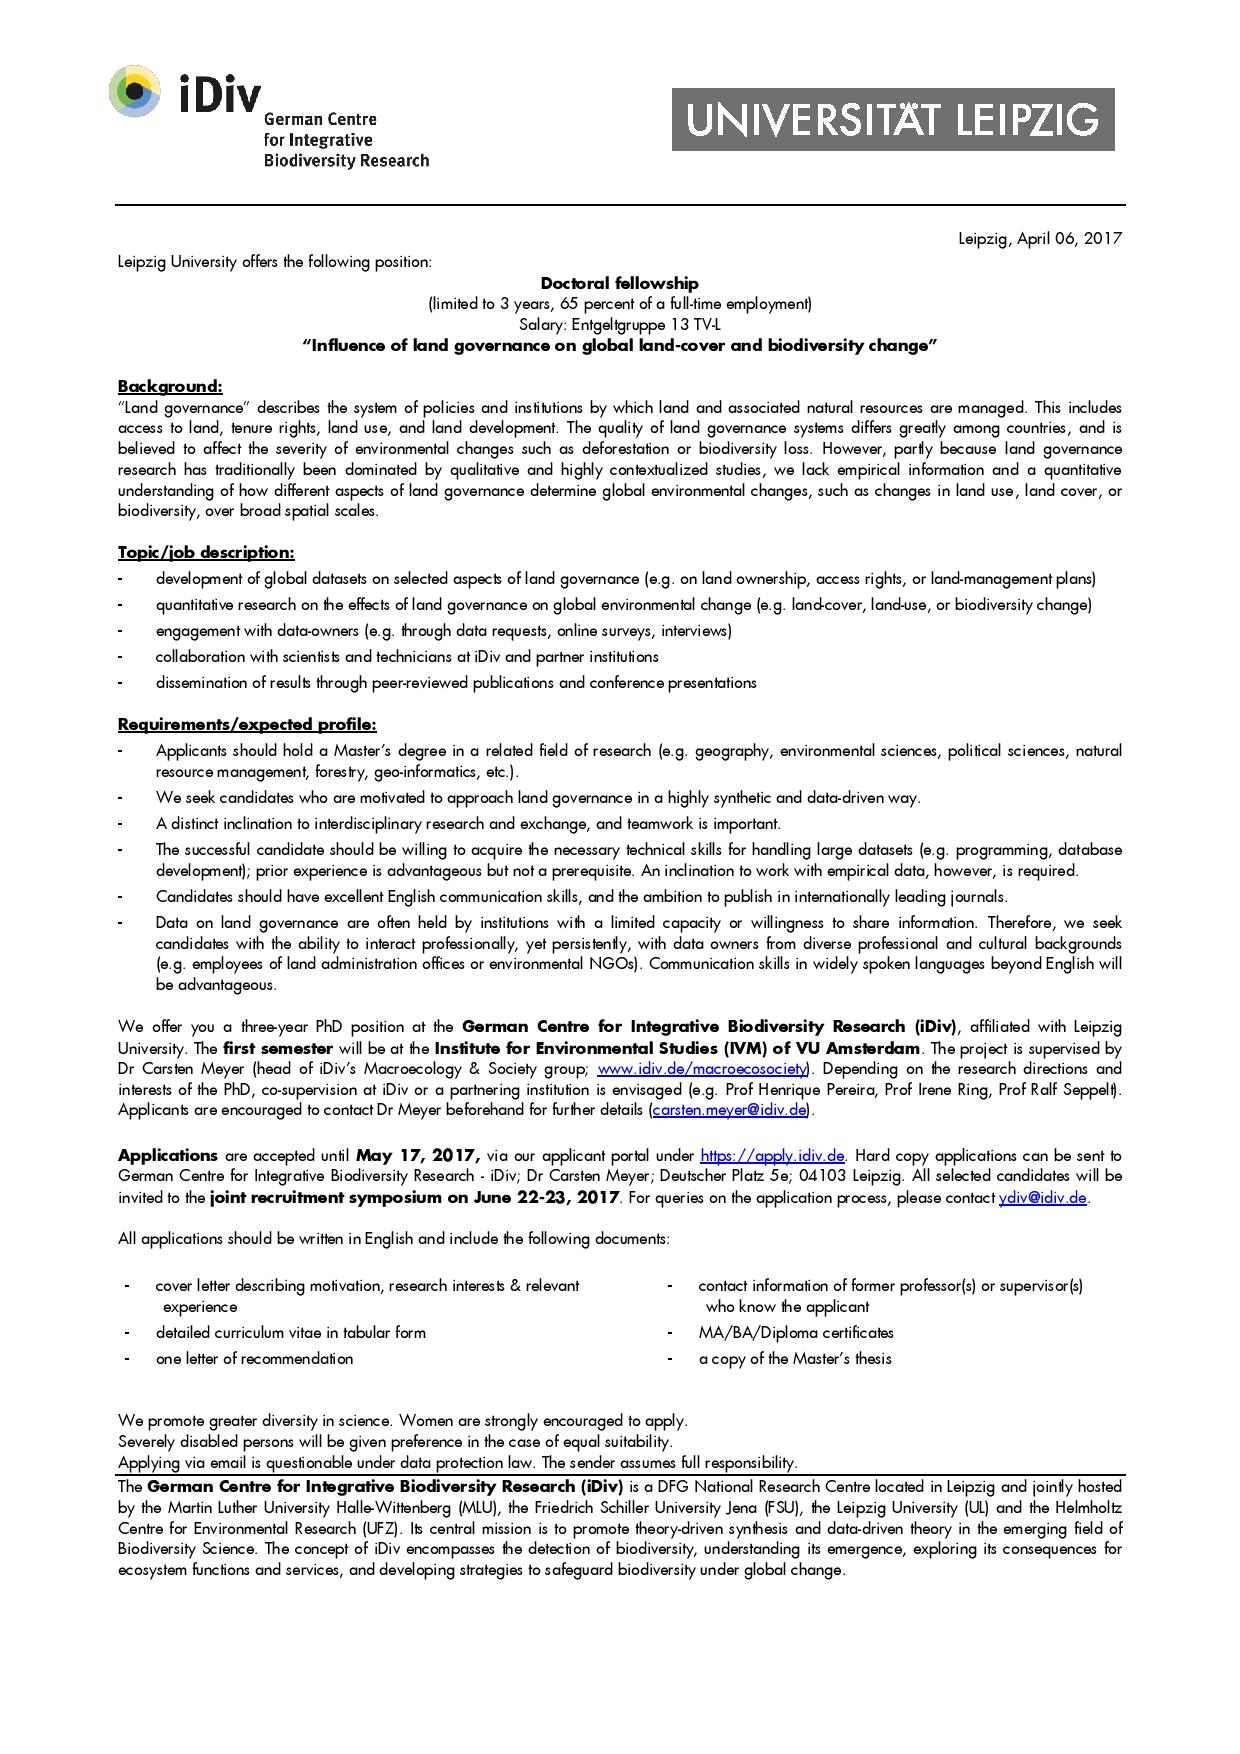 PhD on land governance effects on land change